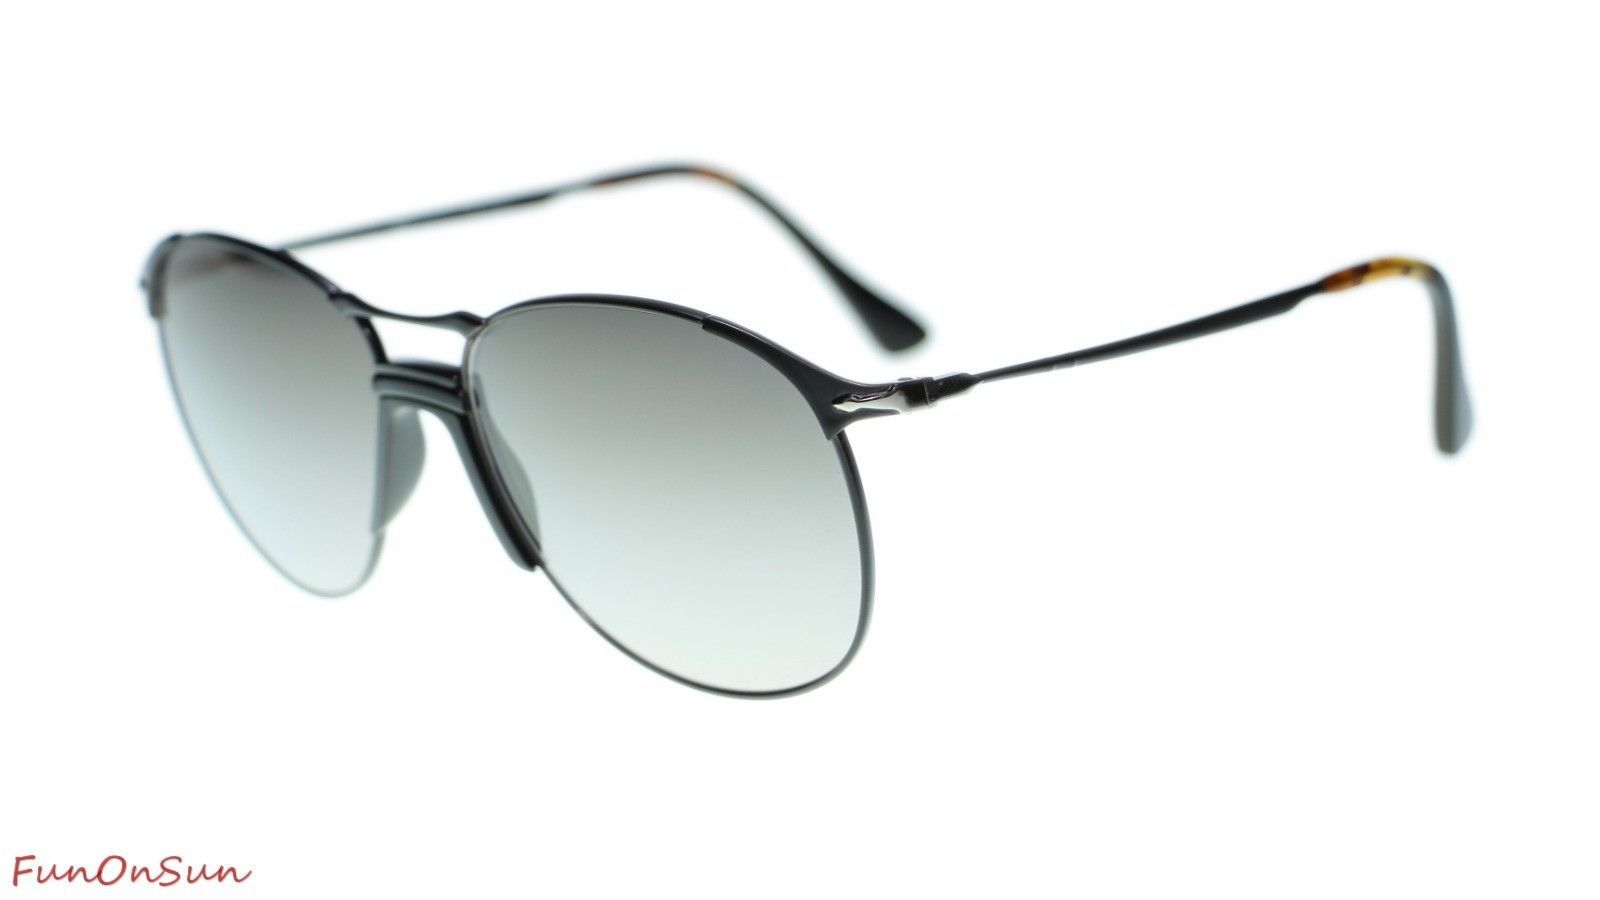 835d7071be19a Persol Mens Sunglasses PO2649S 1078M3 and 12 similar items